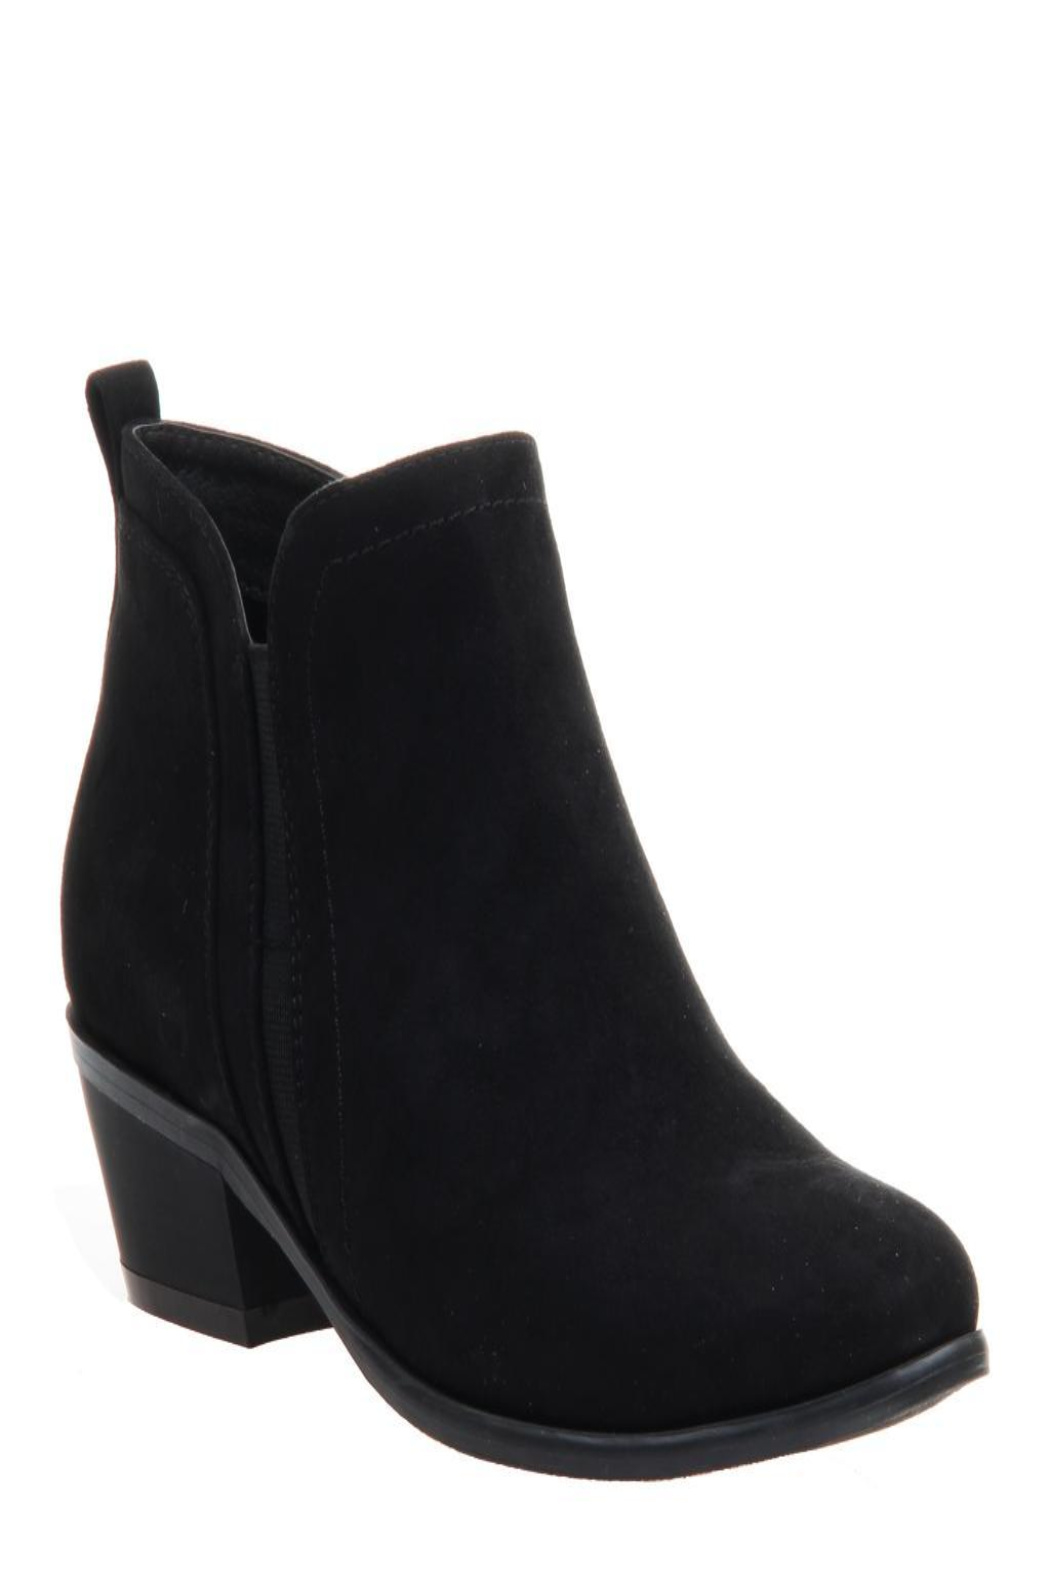 CONSOLIDATED SHOE CO Poet Suede Bootie - Front Cropped Image